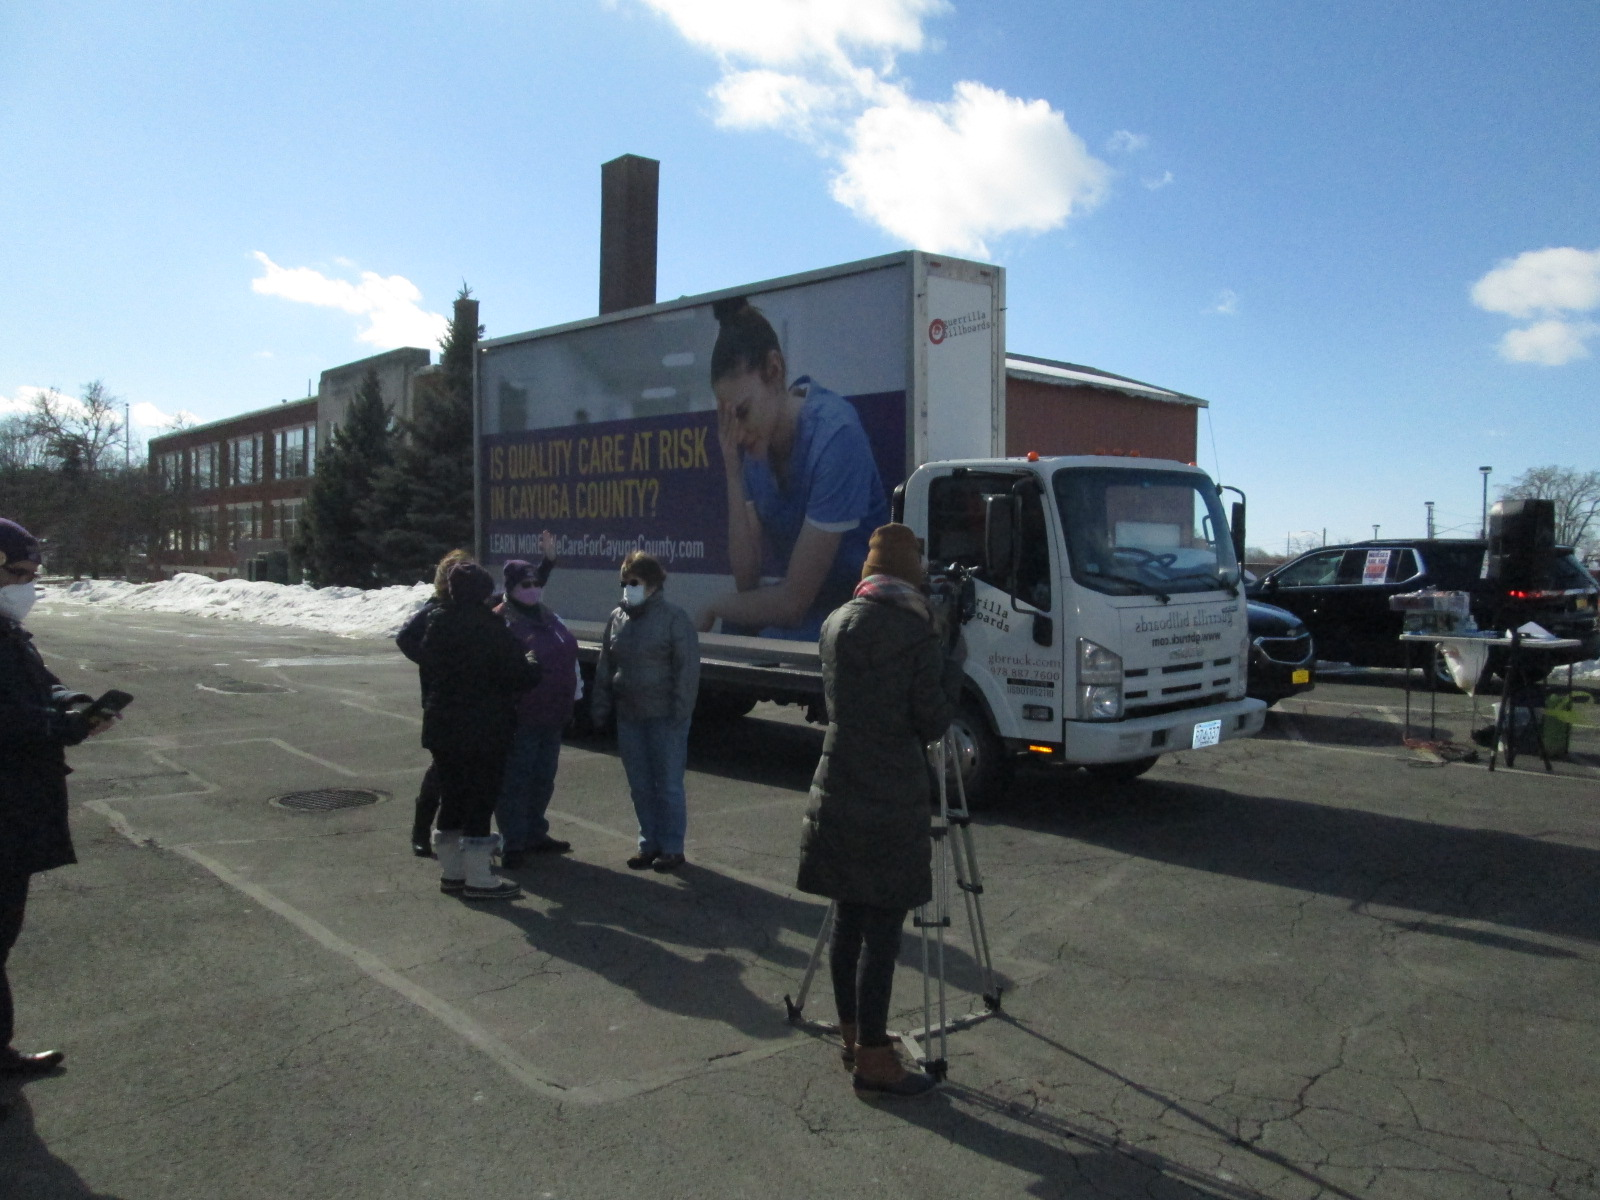 Billboard truck serving as a backdrop for TV reporter interviews.